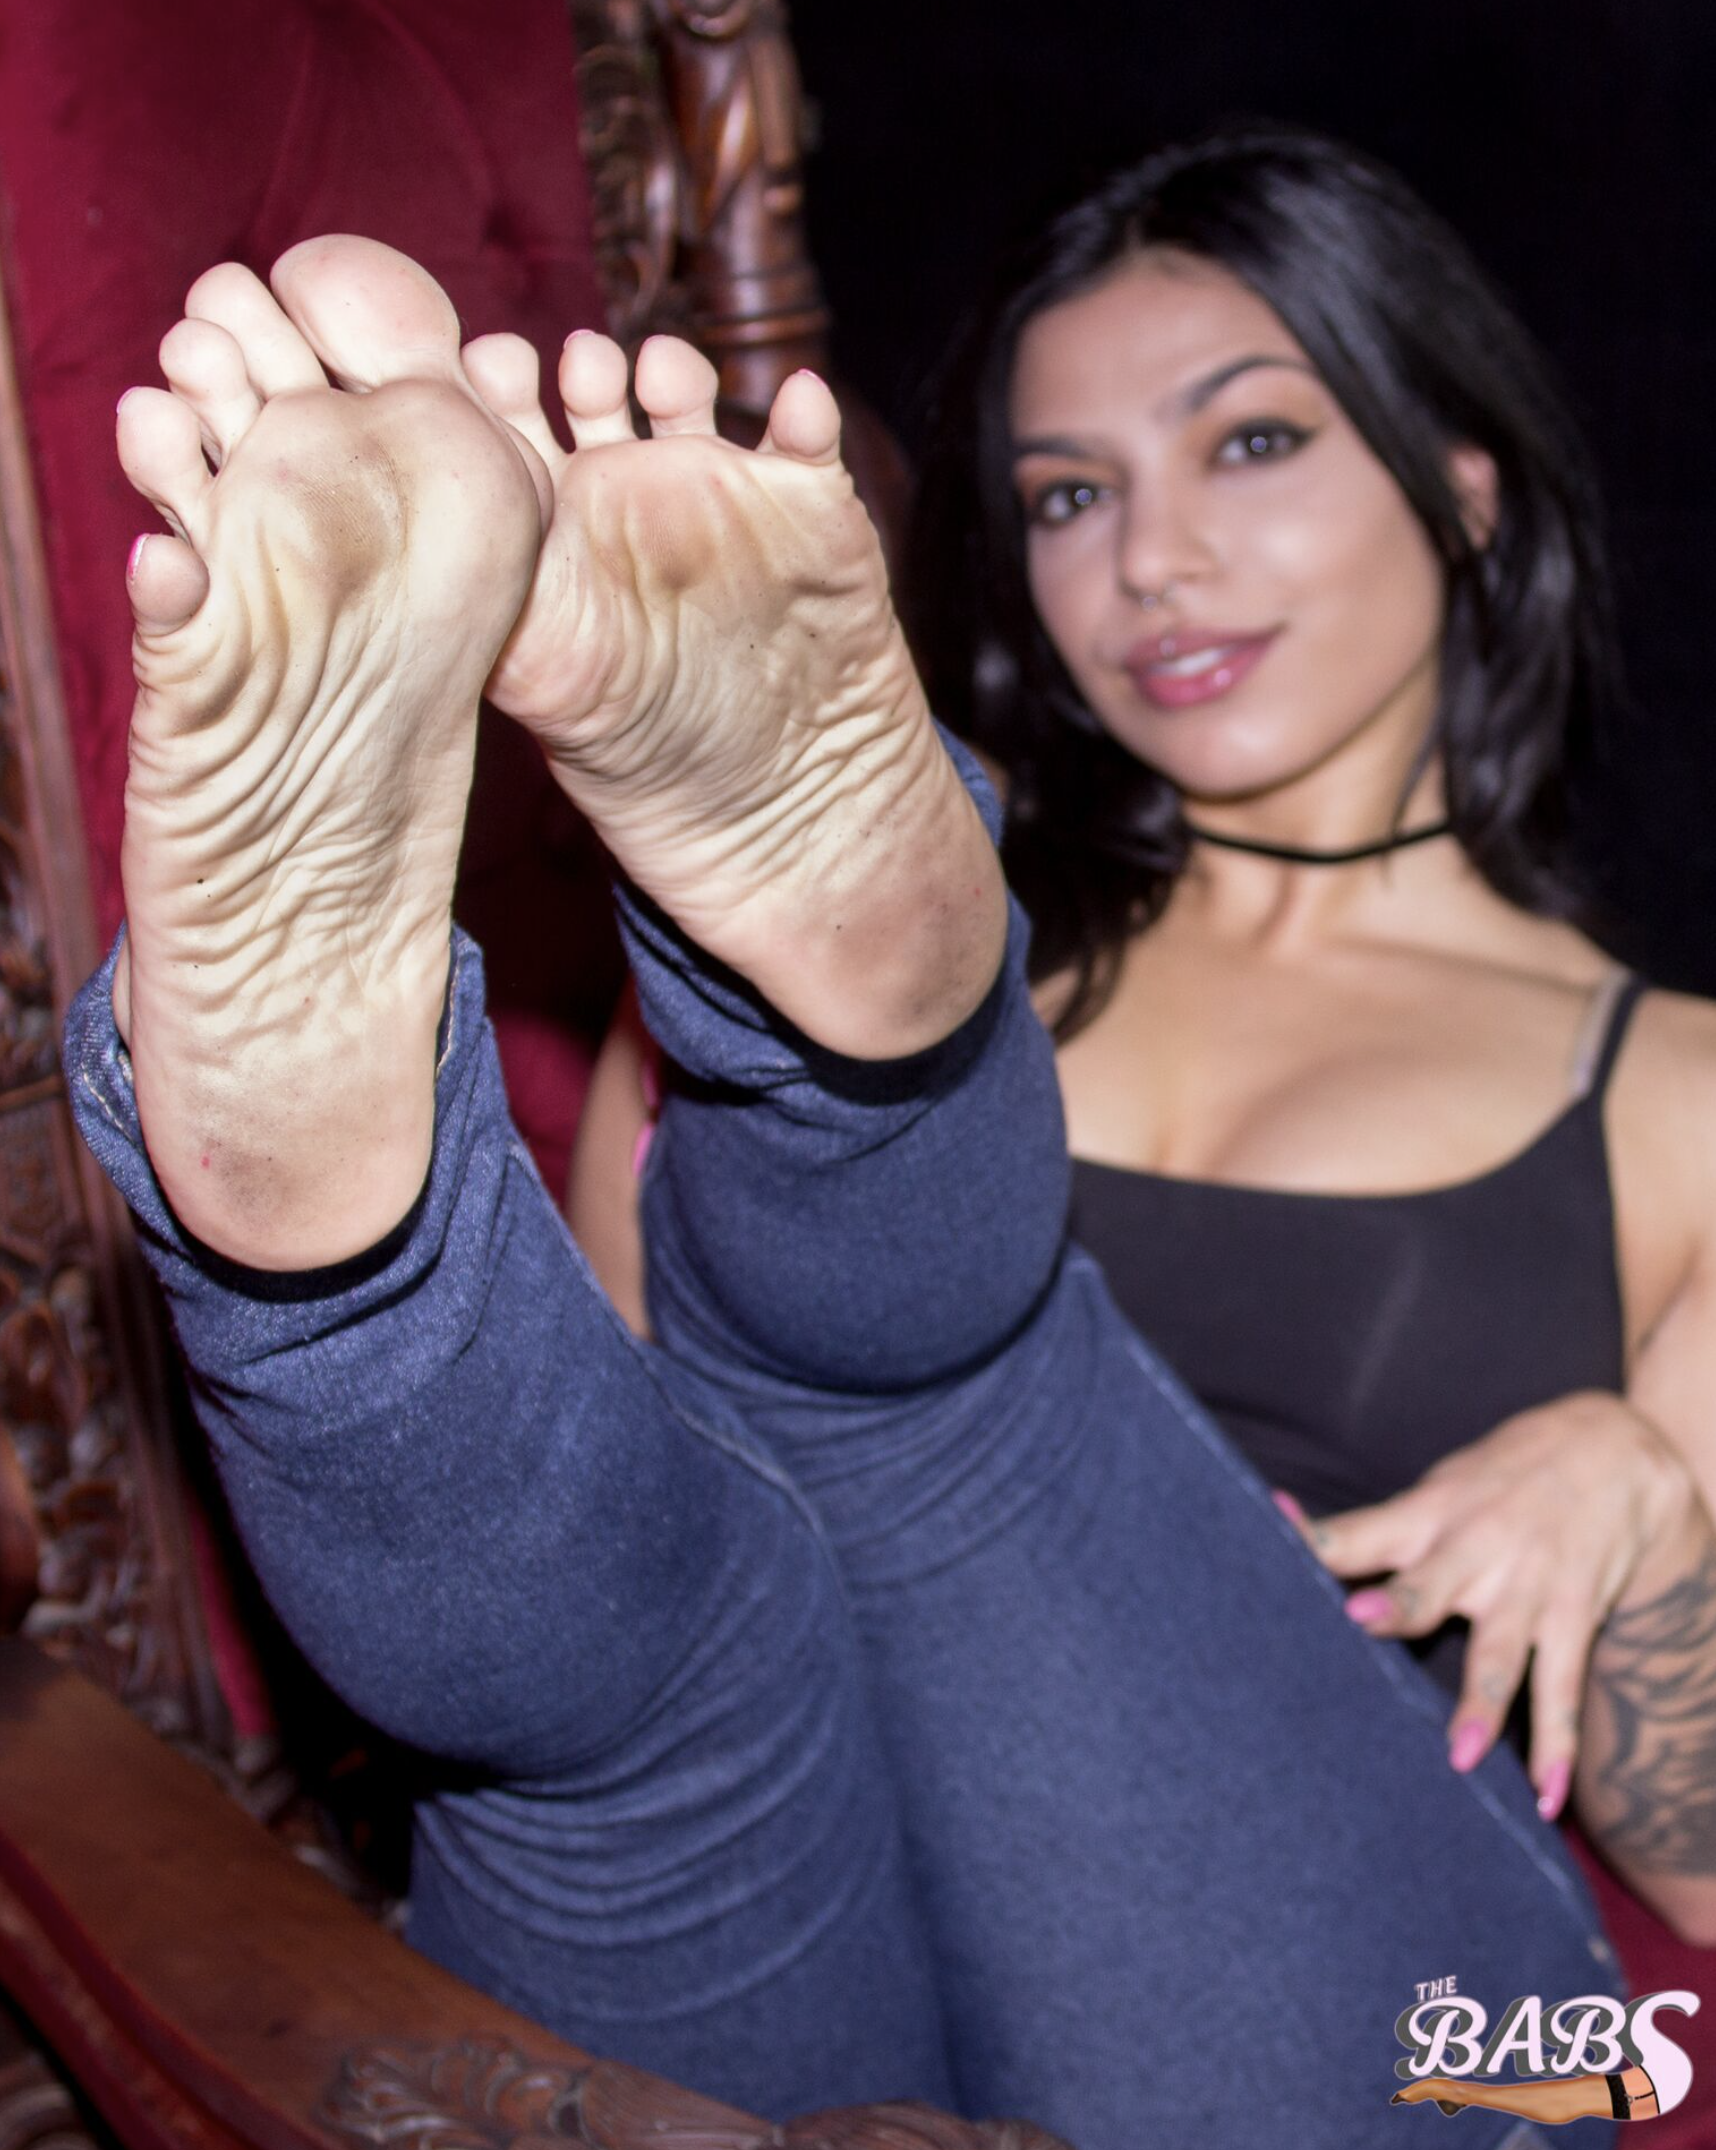 Toros dirty soles- lick em clean Bitch .png